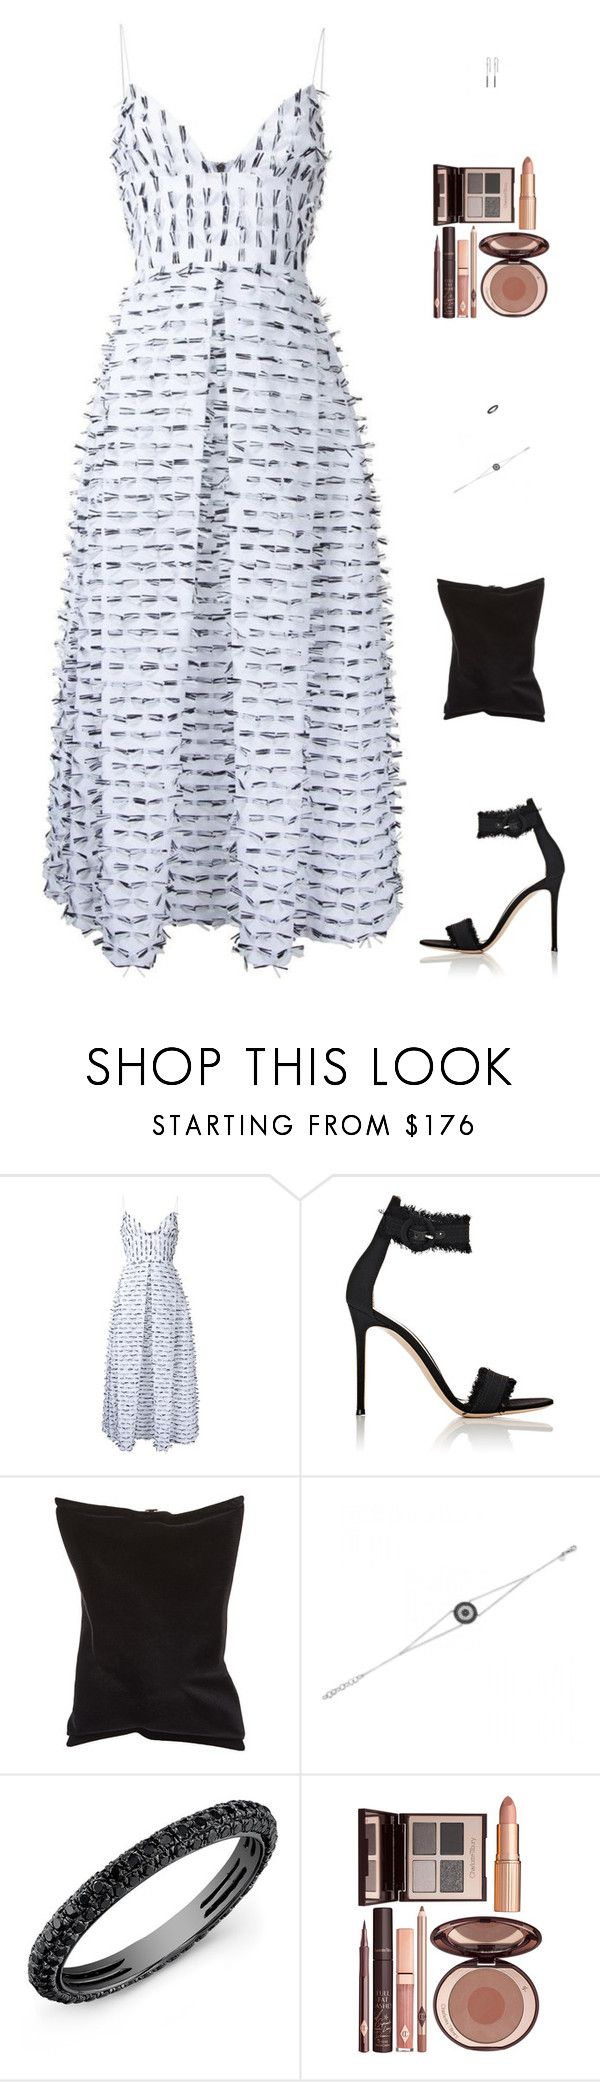 """""""Untitled #5101"""" by mdmsb ❤ liked on Polyvore featuring Alex Perry, Gianvito Rossi, Anya Hindmarch and Charlotte Tilbury"""